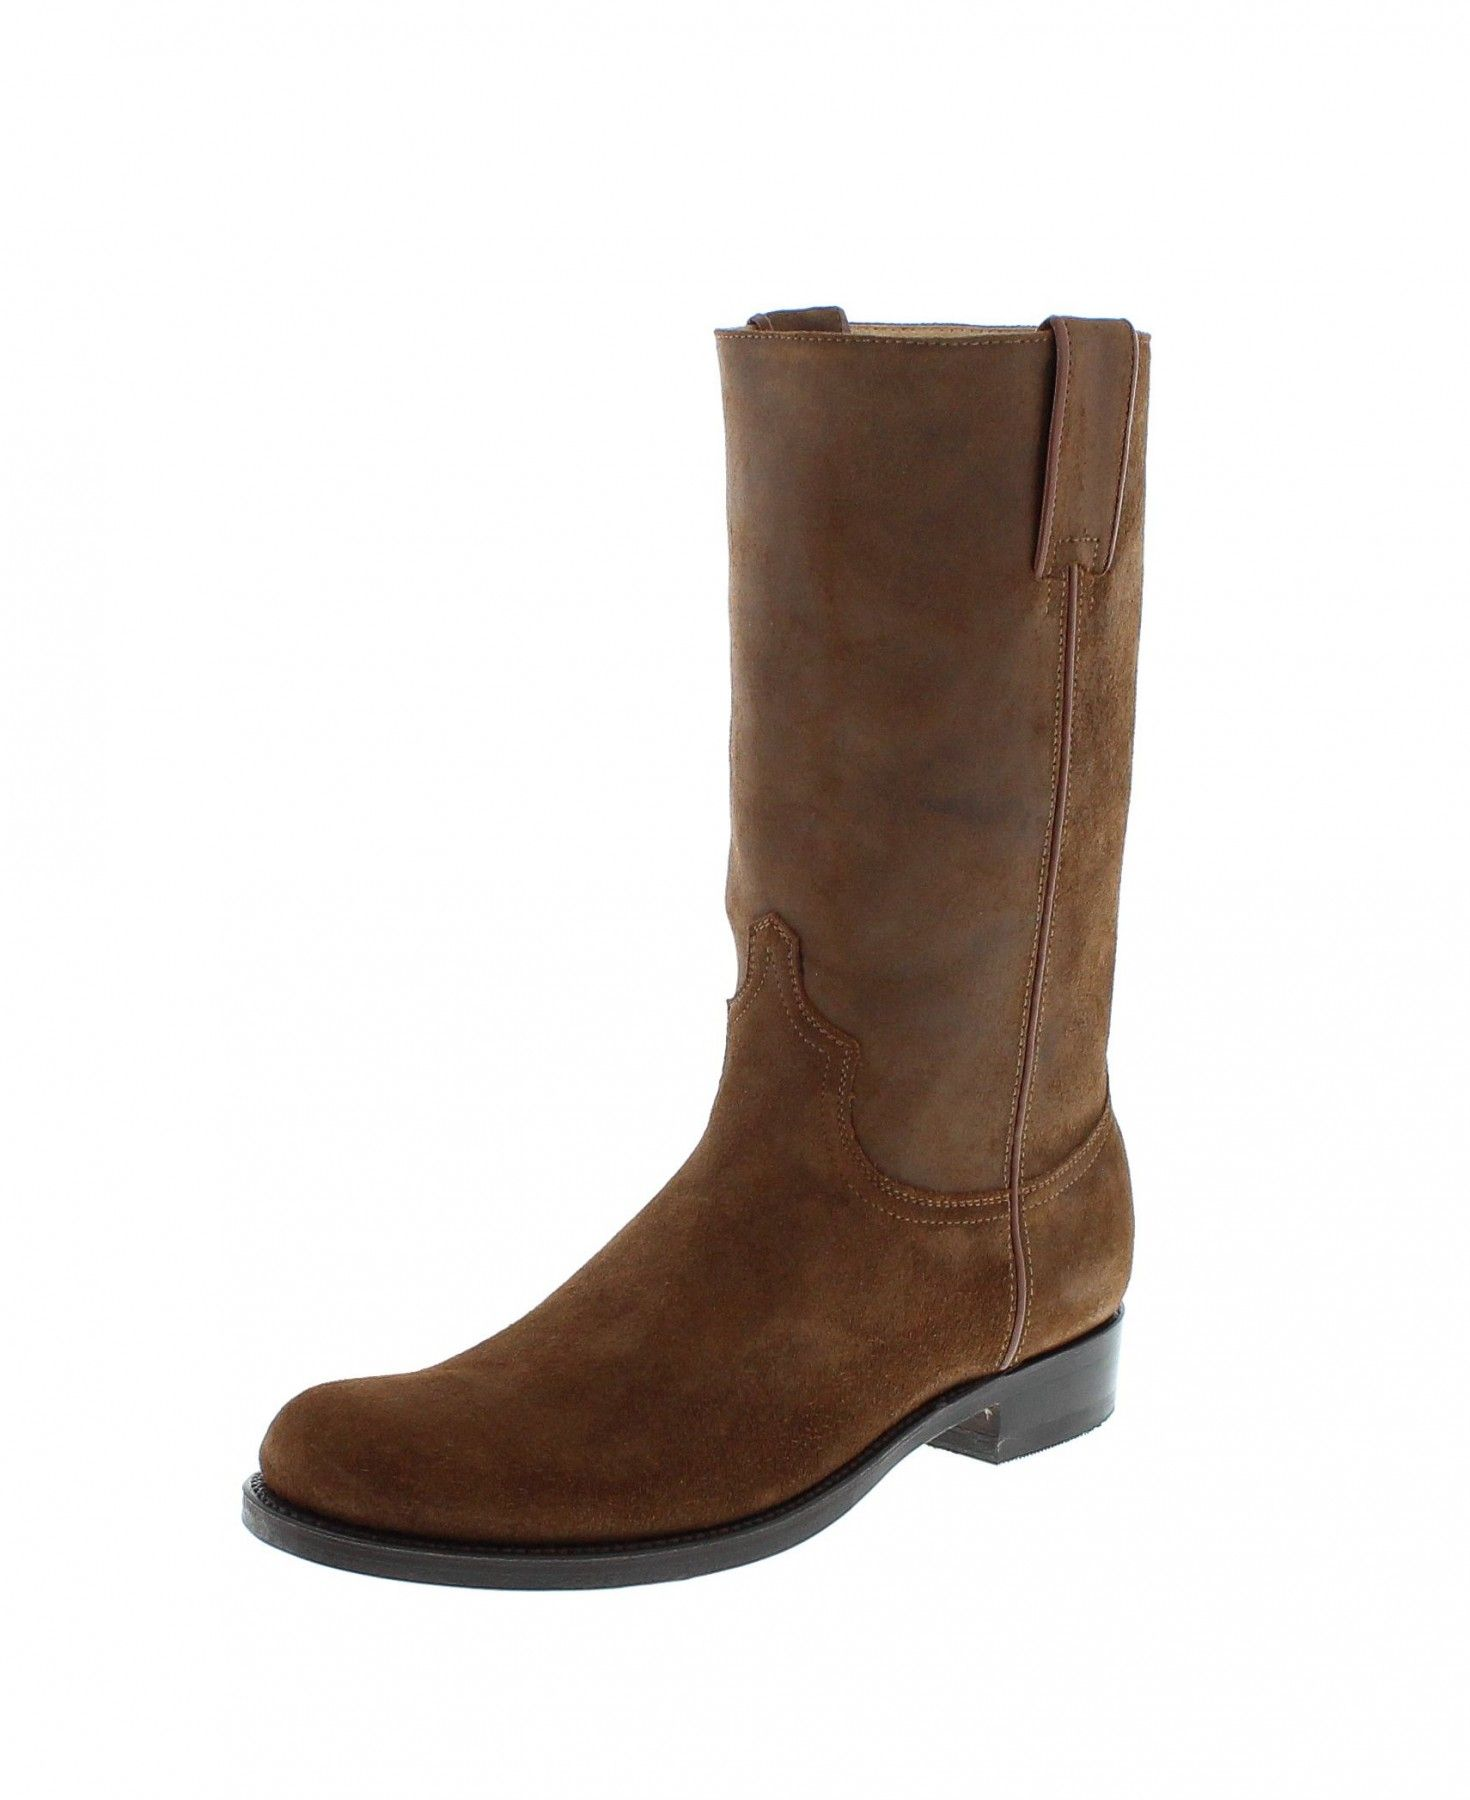 Sendra Boots 14014 Rovere Classic Boots braun in 2019